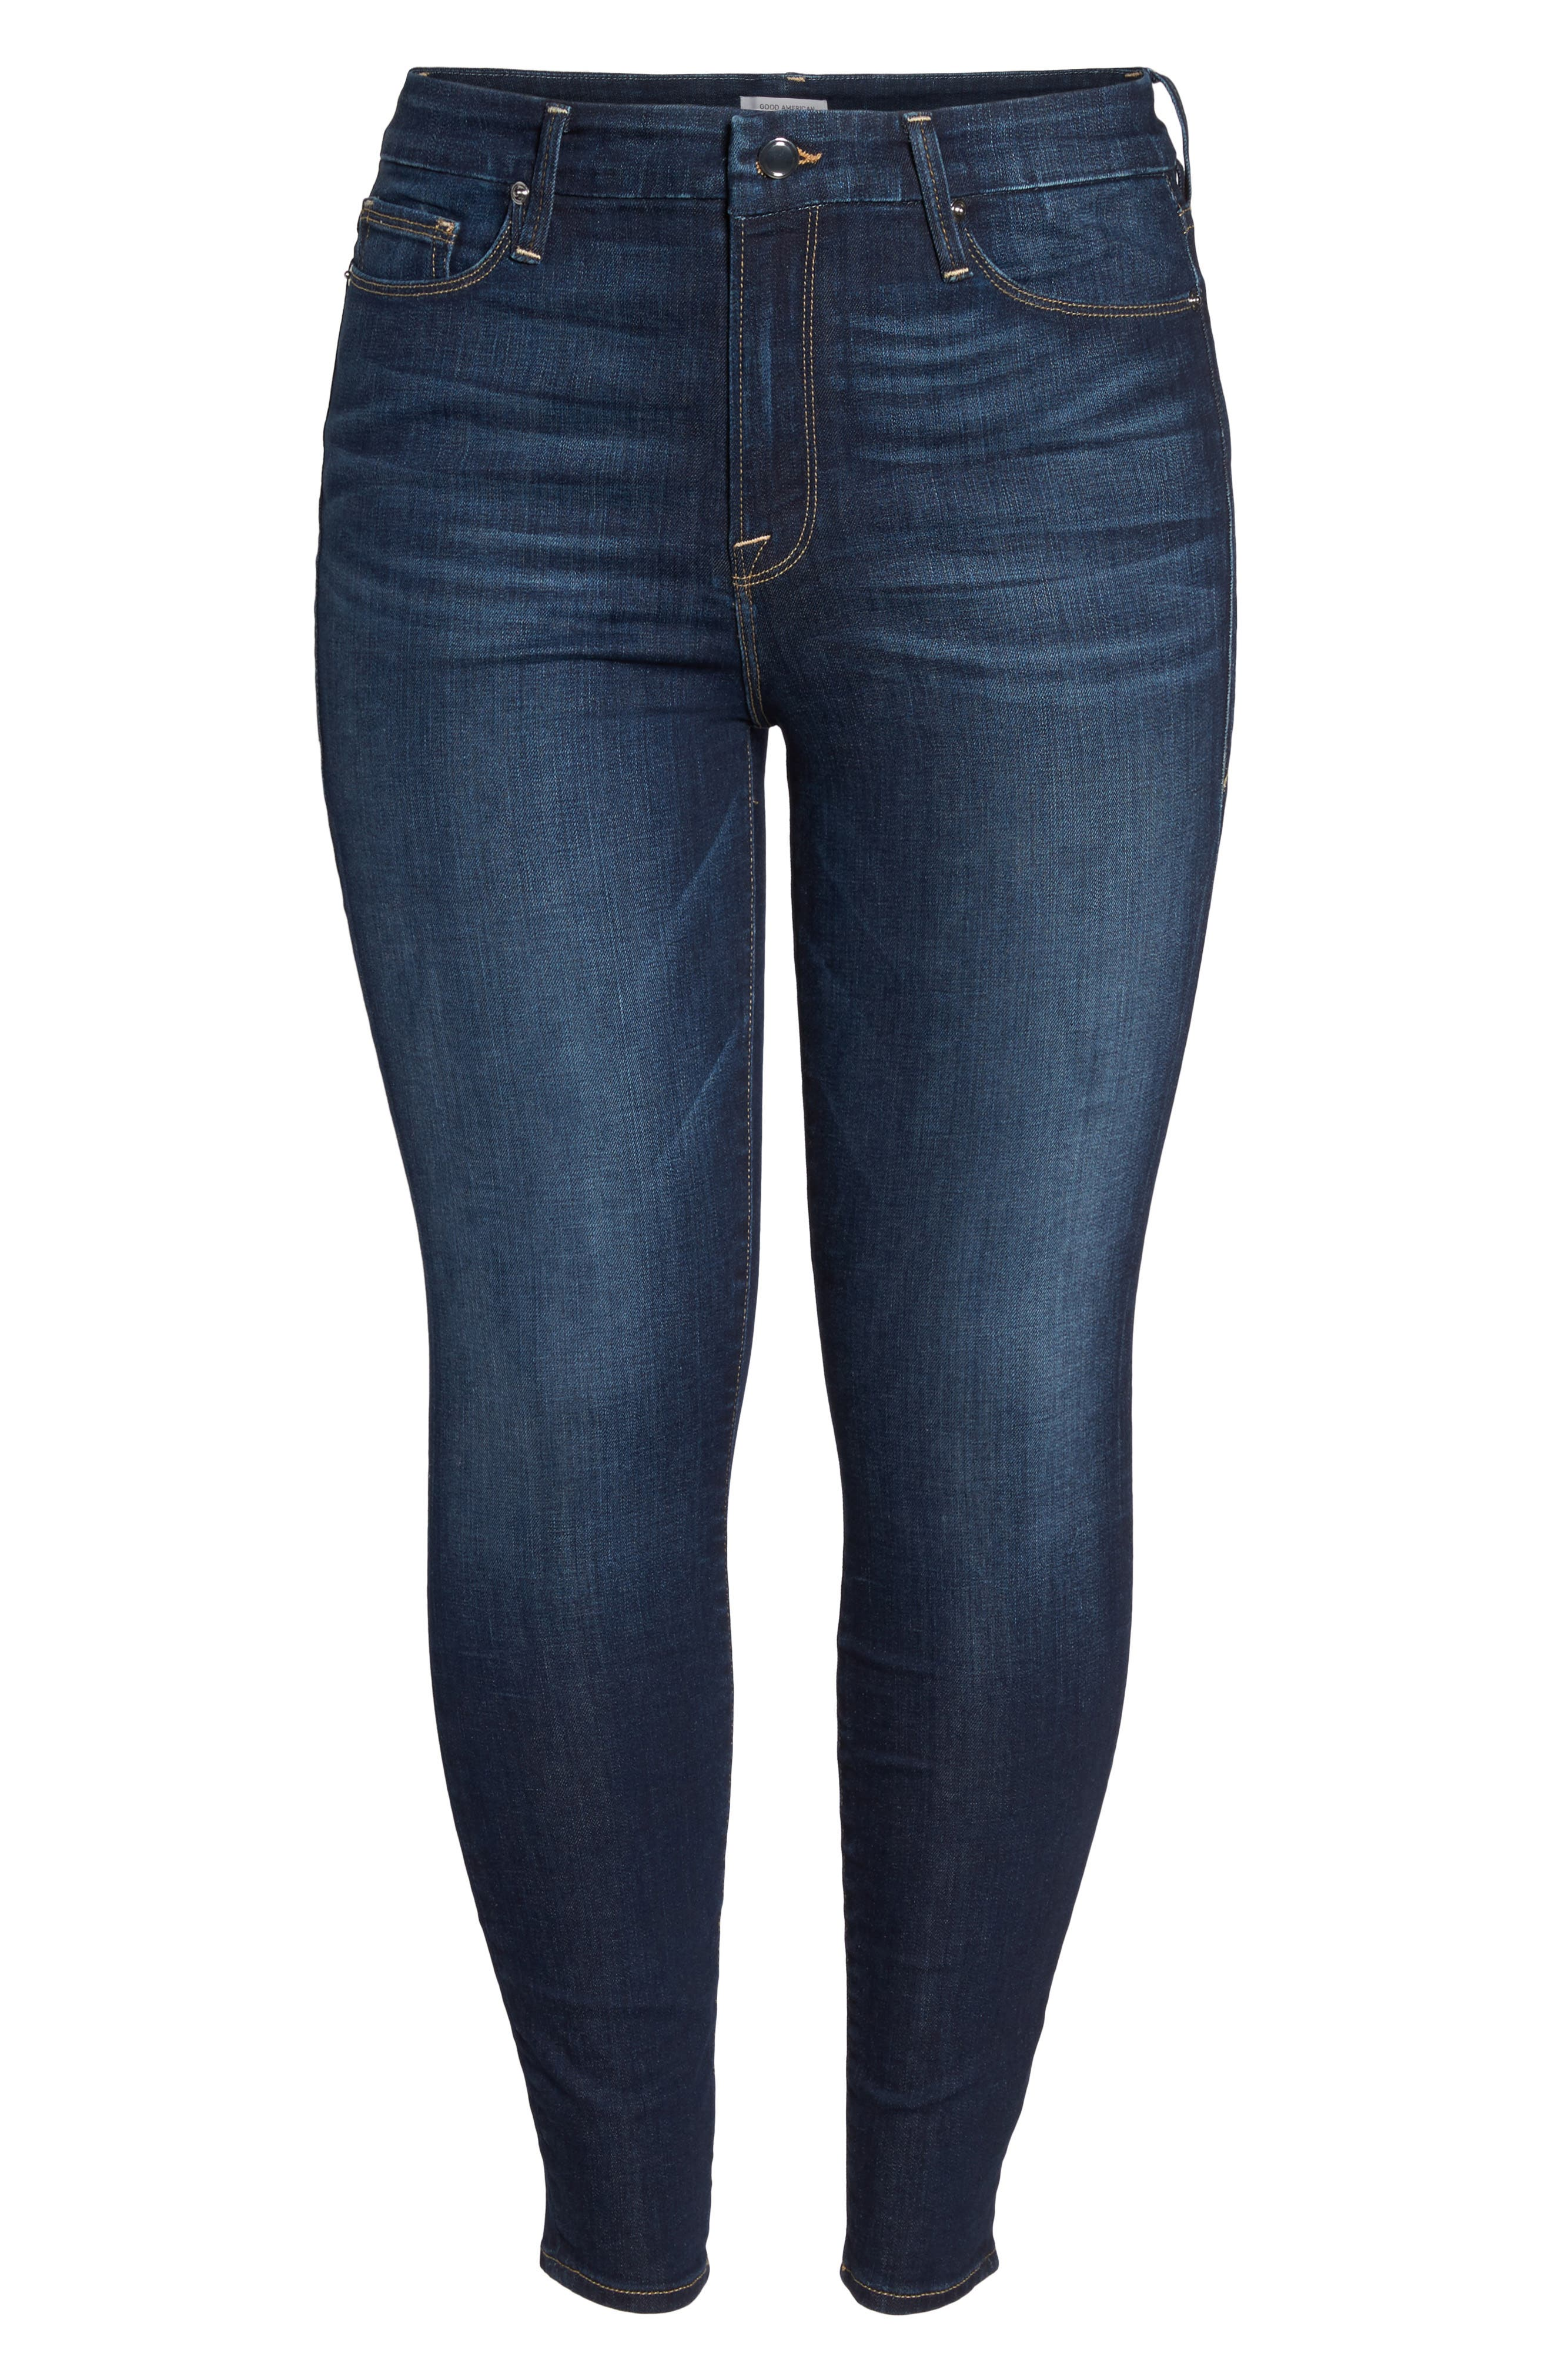 Good Legs High Waist Skinny Jeans,                             Alternate thumbnail 6, color,                             404